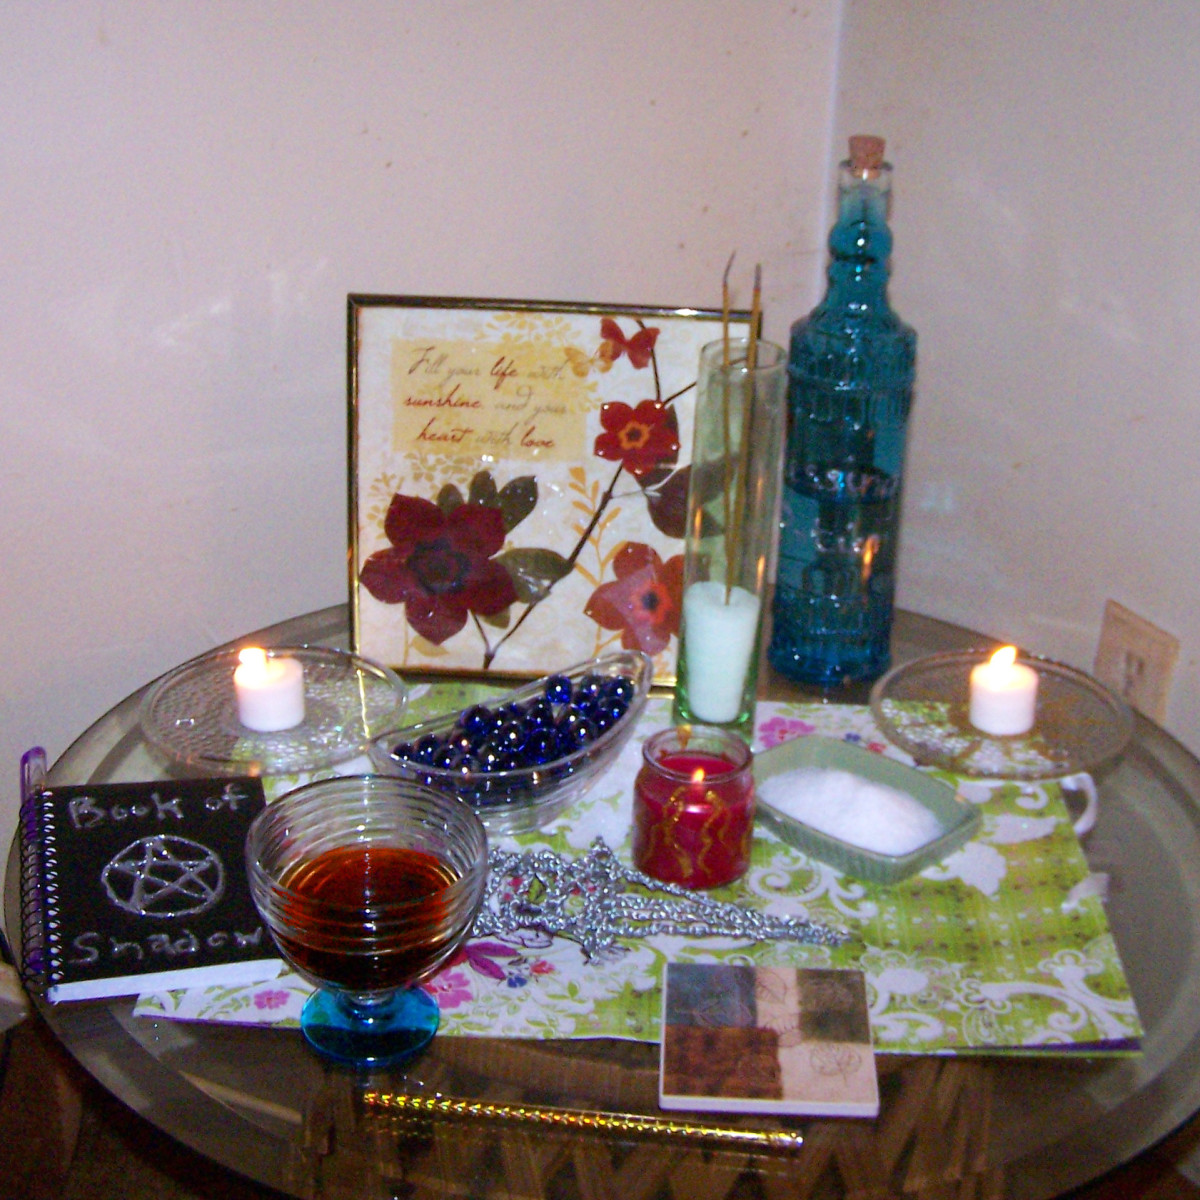 How to make a wicca altar on a dollar store budget exemplore for Pagan decorations for the home